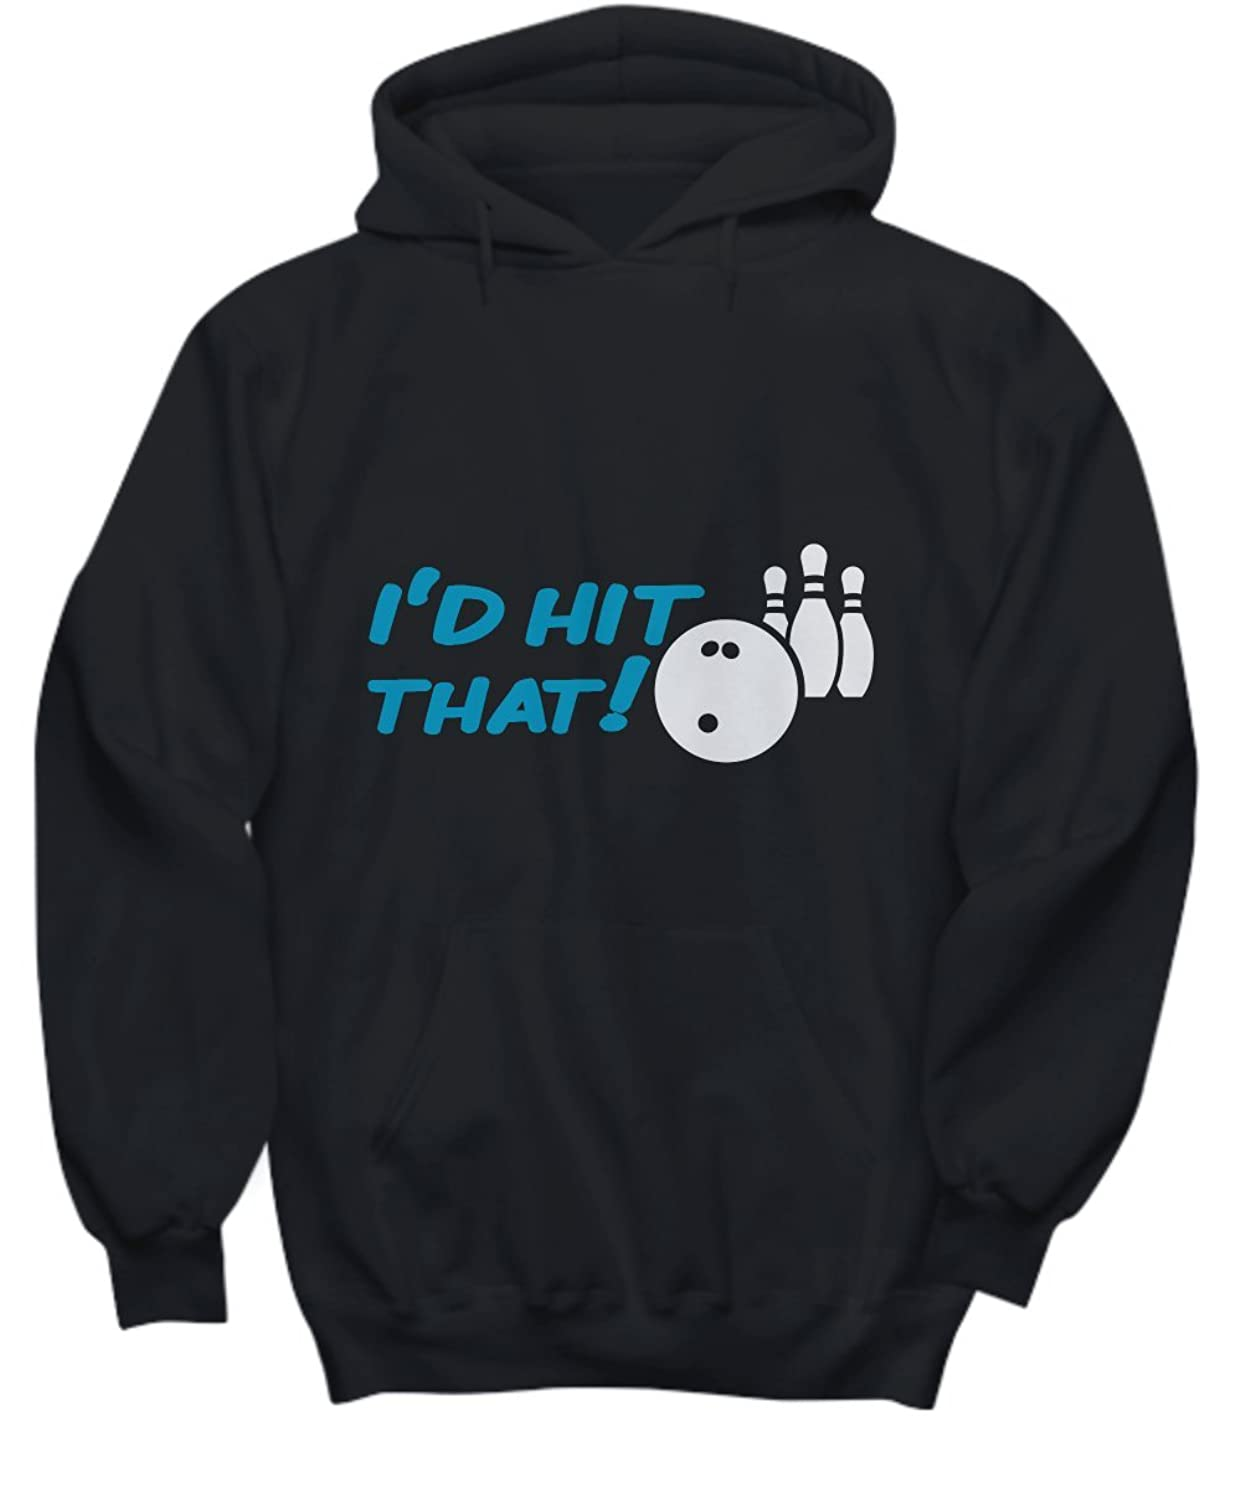 Candid Awe Hit That! - Bowling, Bowling Players, Bowling Pins, Sports – Unisex Hoodie